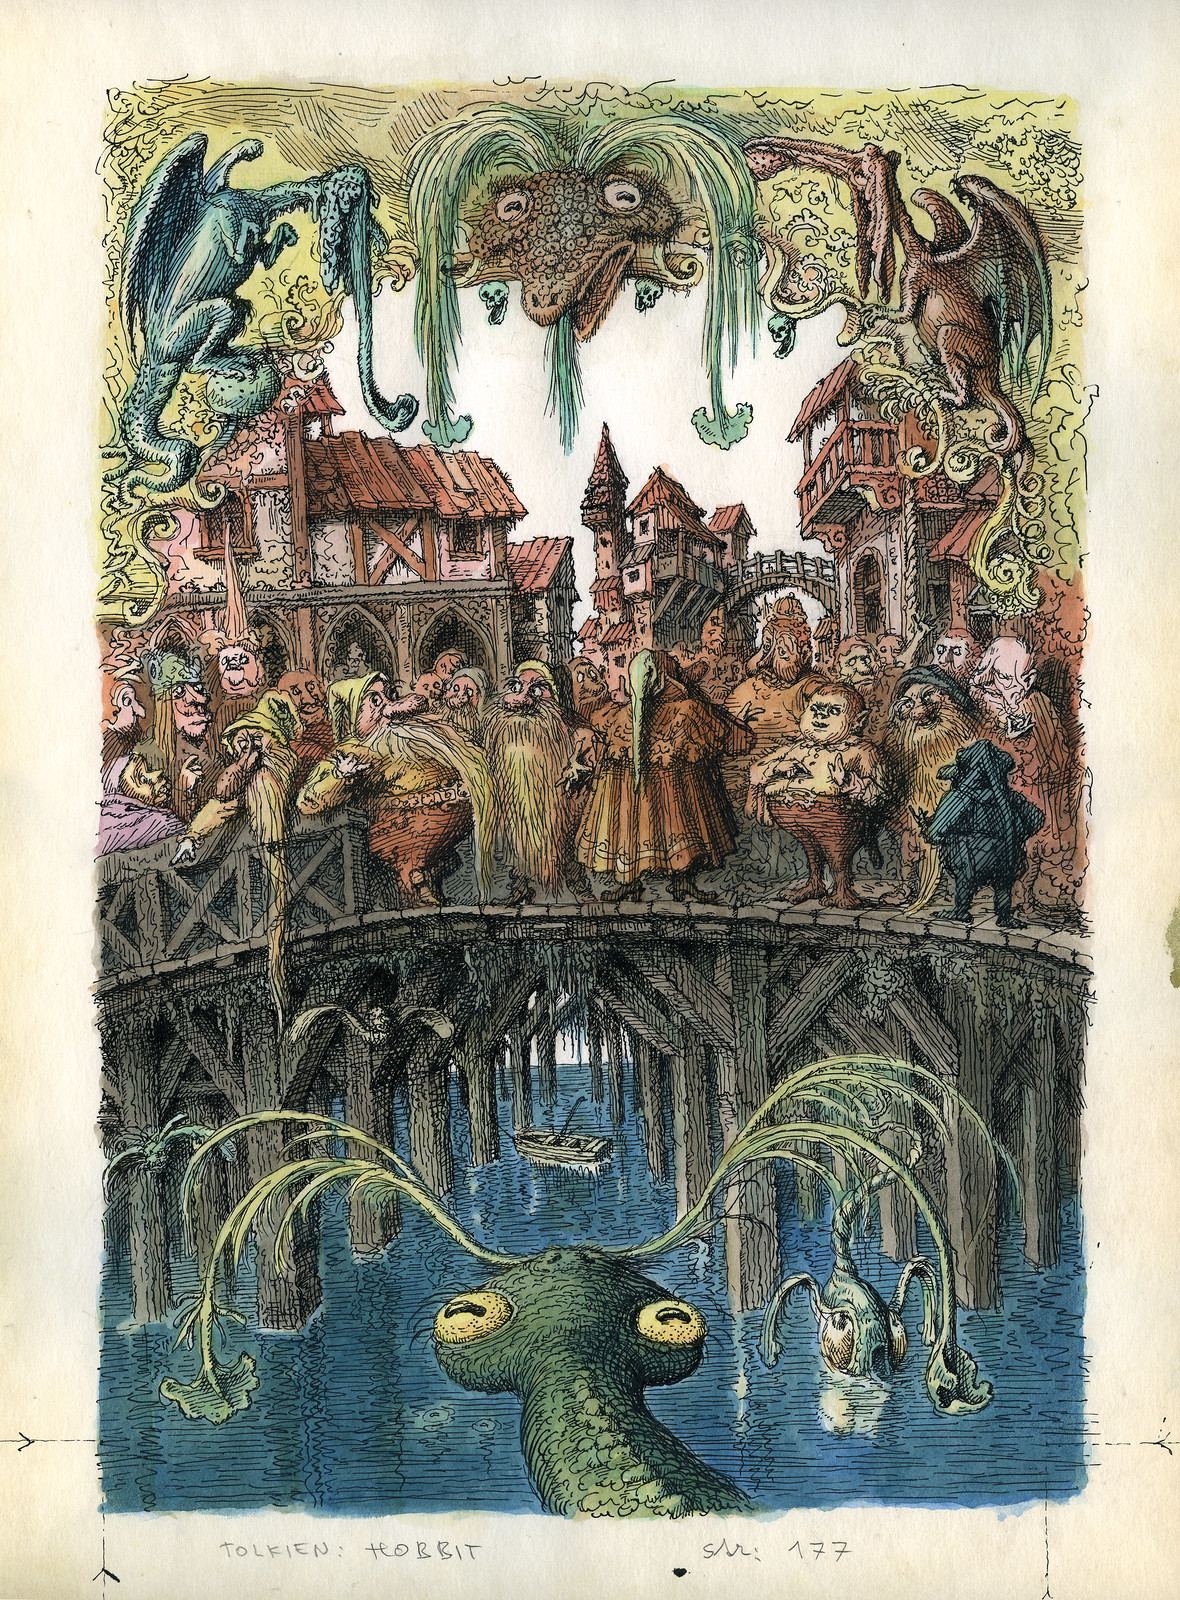 Peter Klucik -The Hobbit, Illustration 10